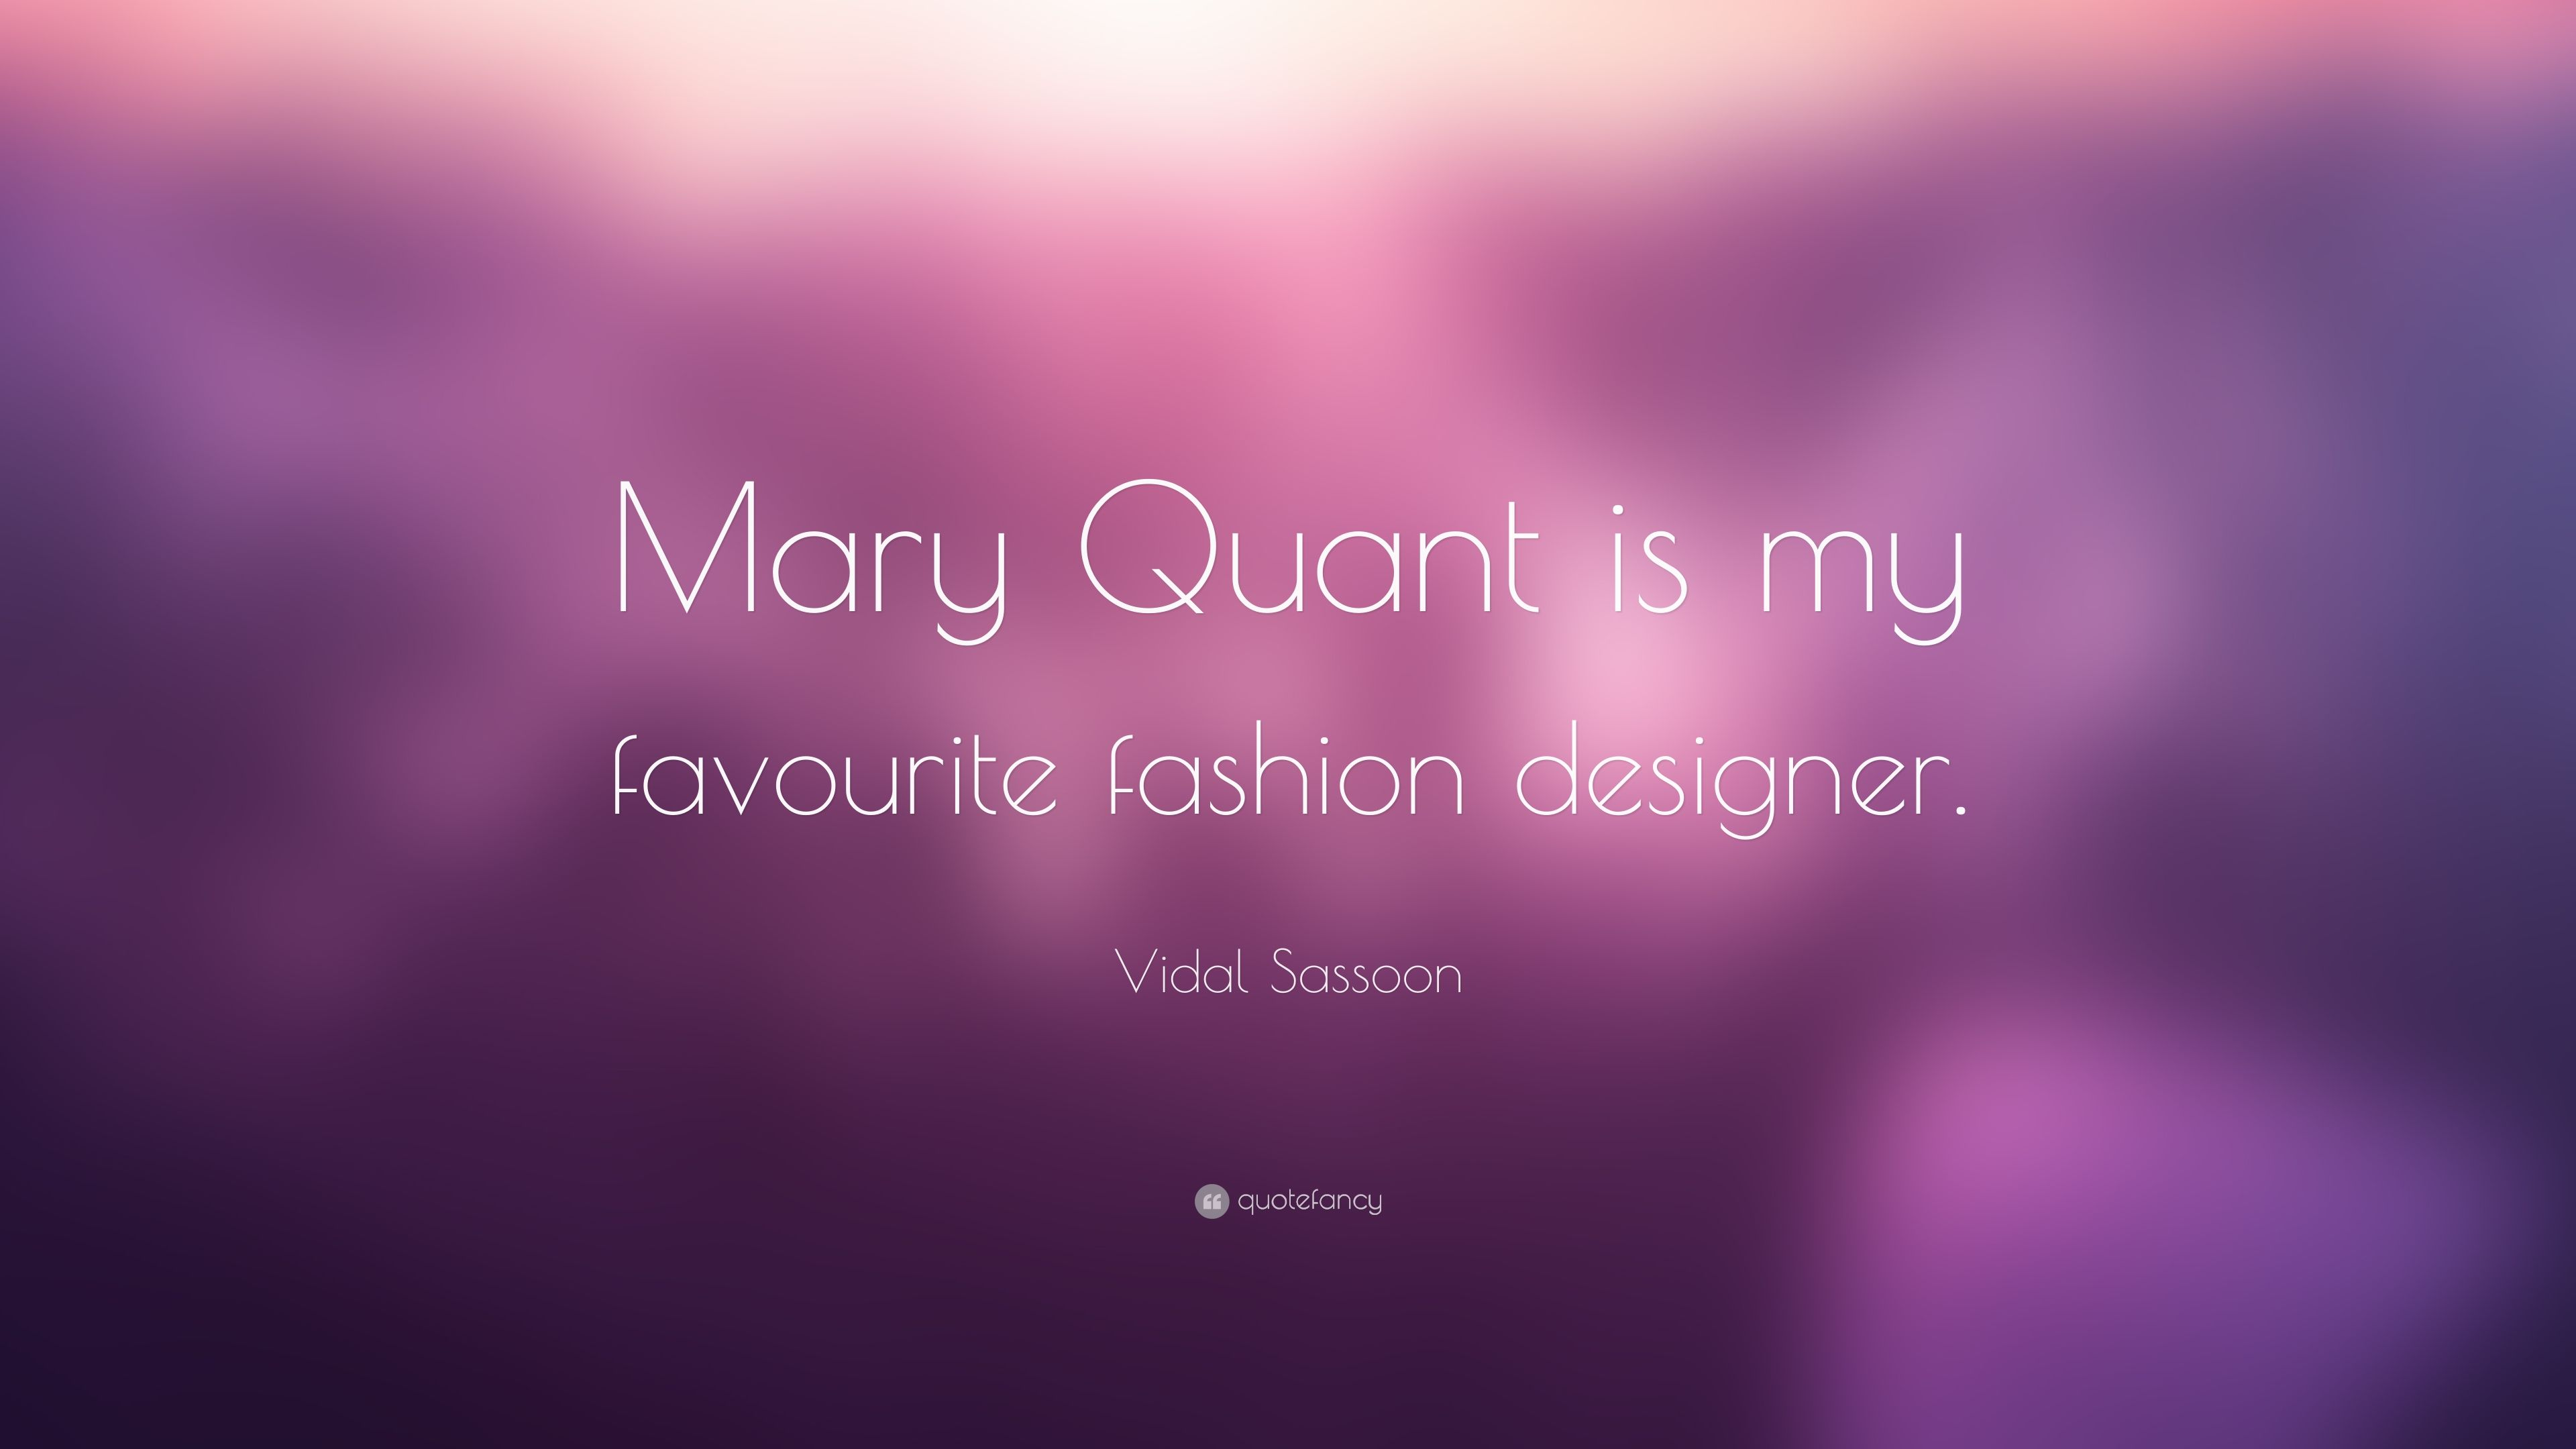 Vidal Sassoon Quote Mary Quant Is My Favourite Fashion Designer 7 Wallpapers Quotefancy